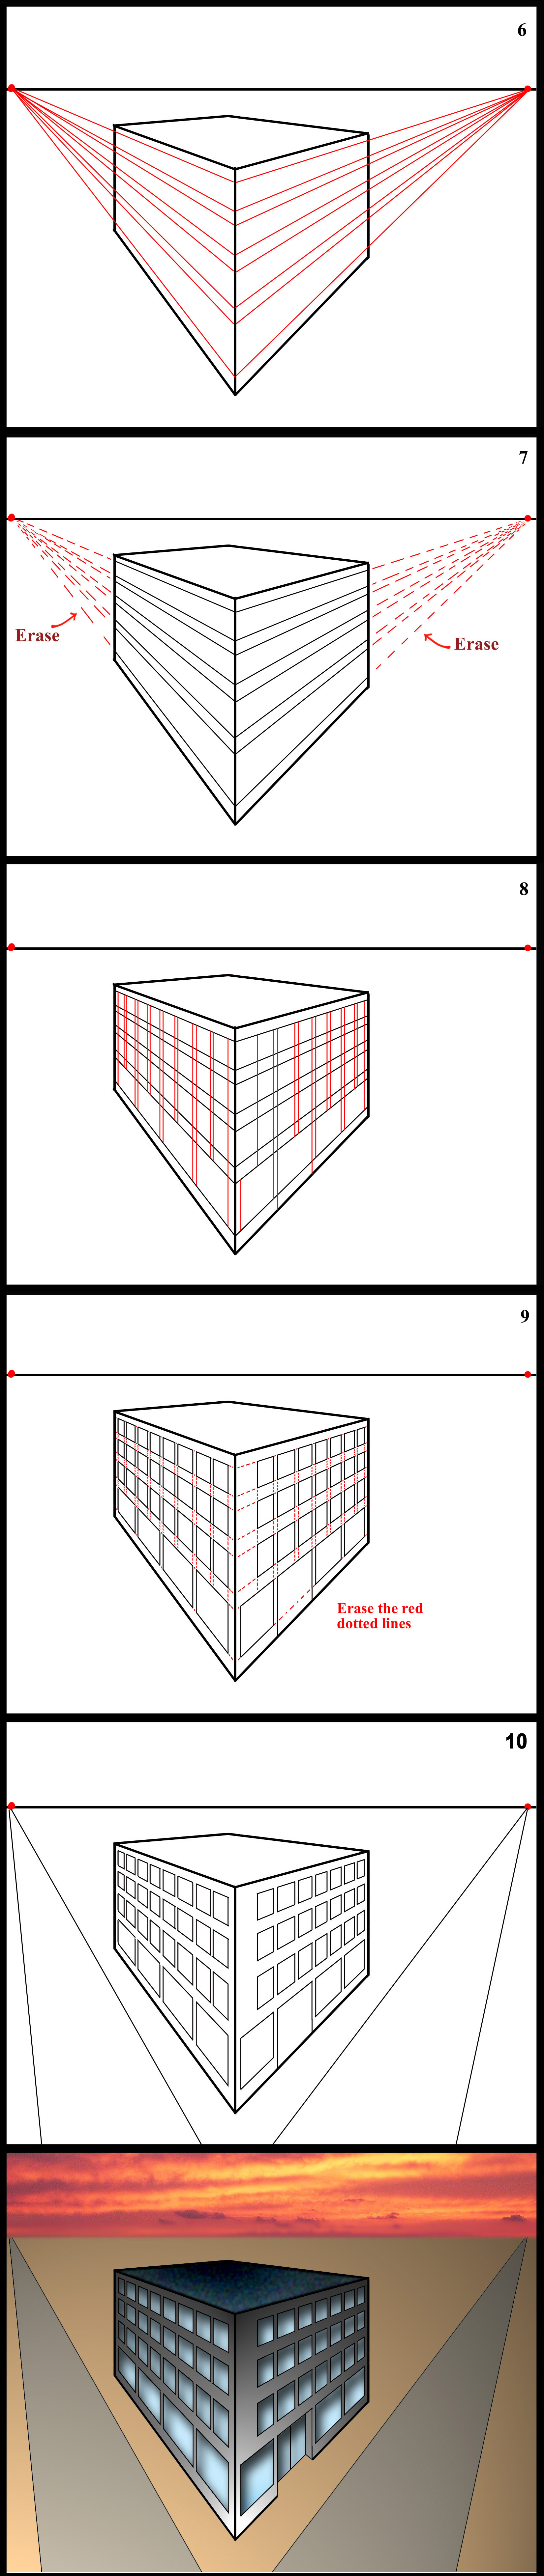 Two Point Perspective Step By Step Example Of A Building With Windows